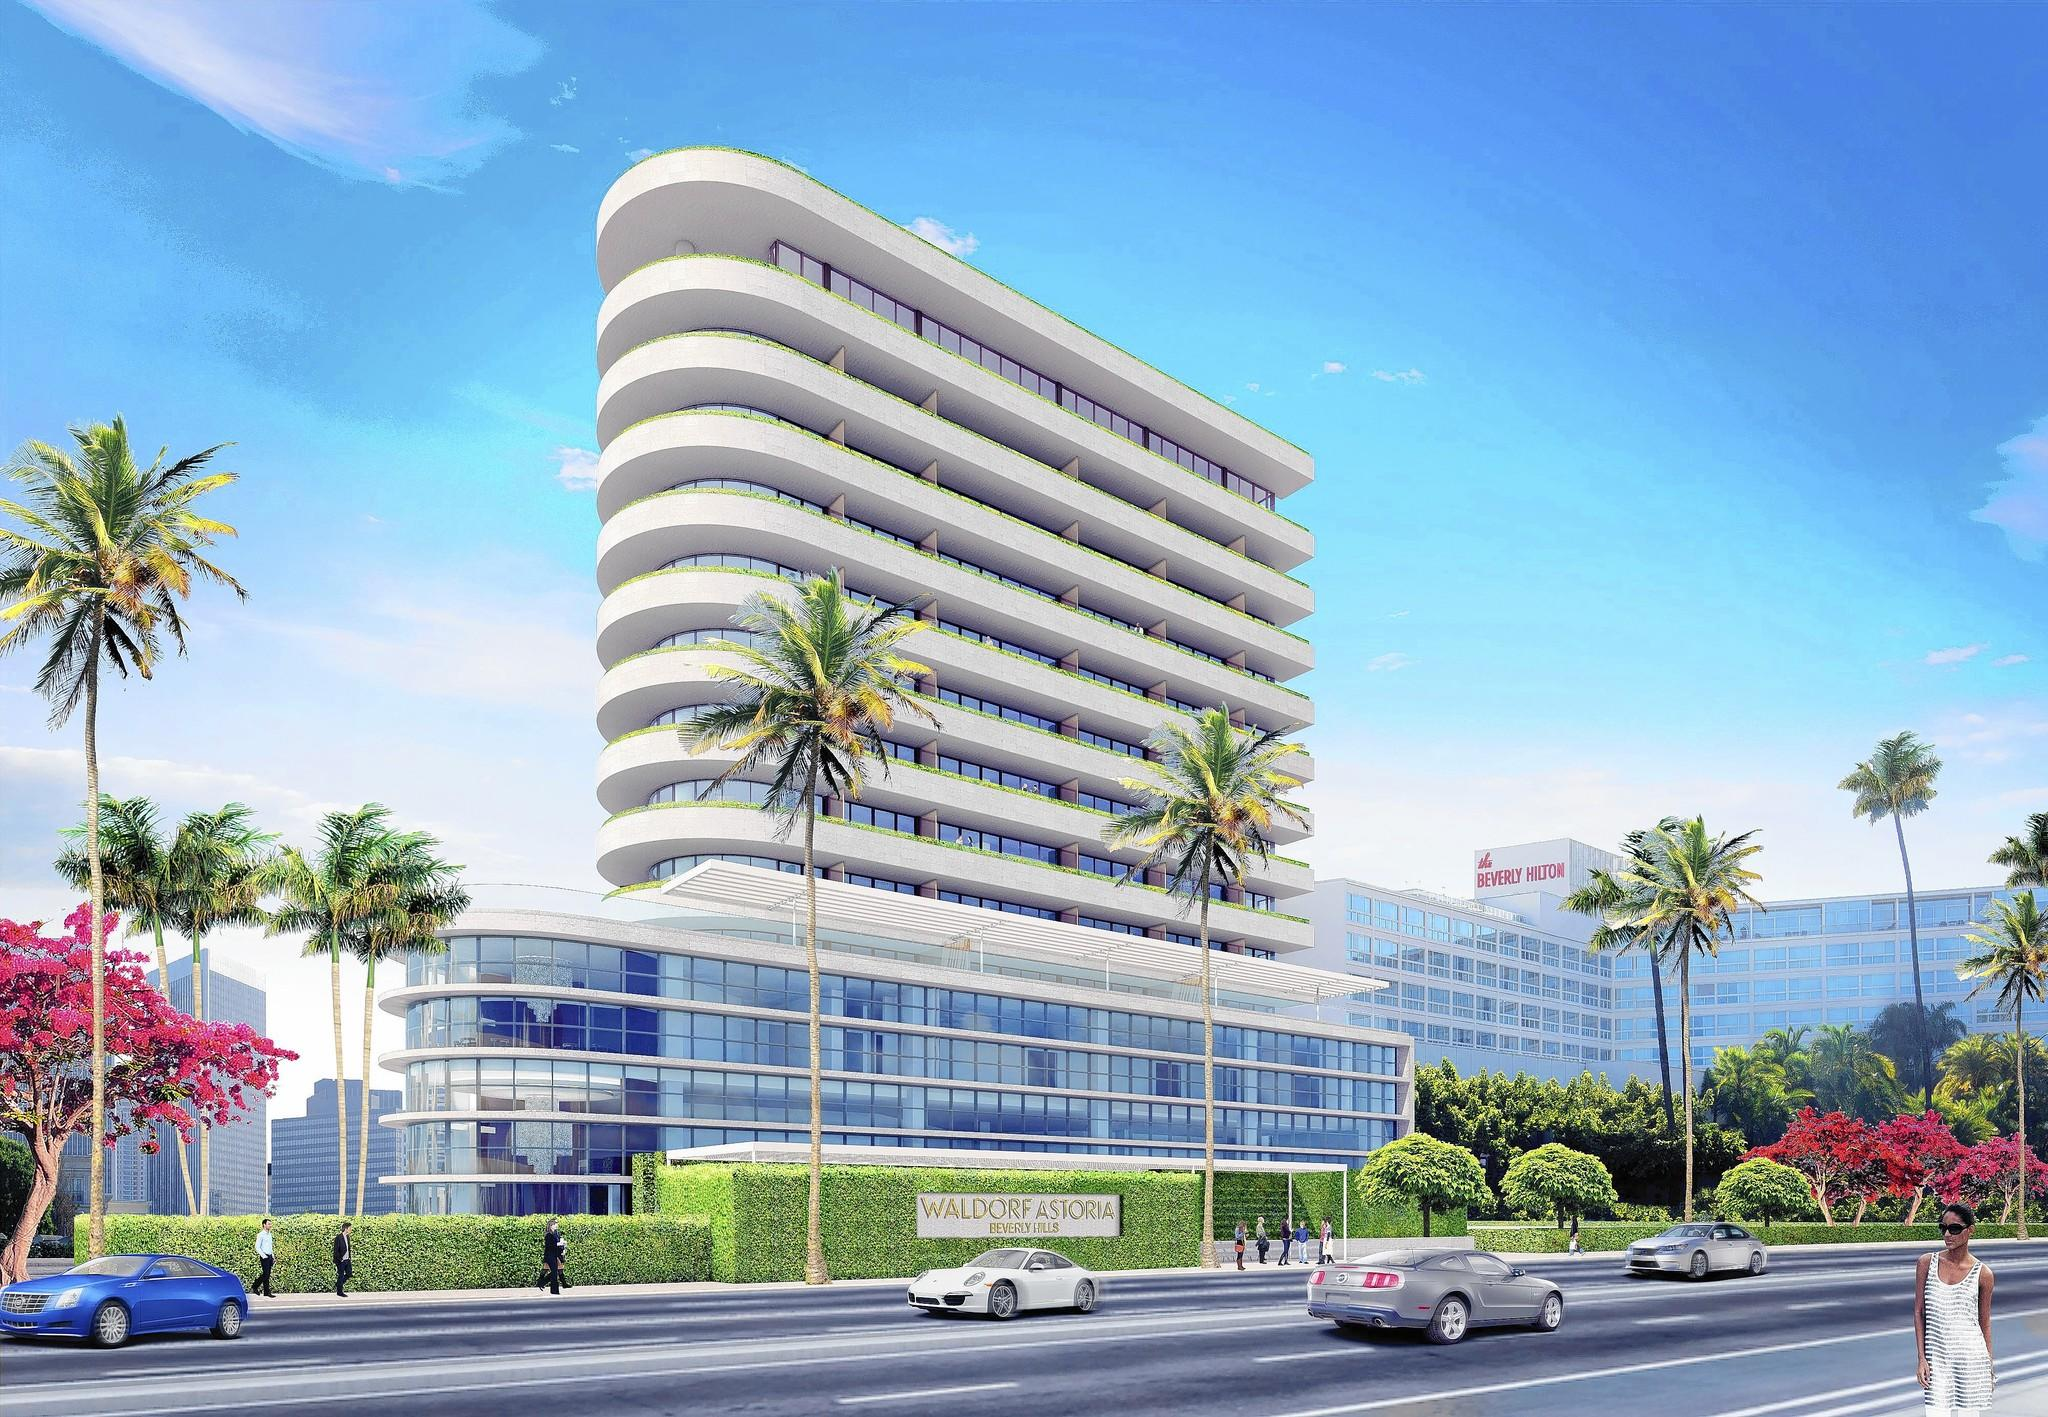 The 12-story Beverly Hills Waldorf Astoria will stand at the intersection of Santa Monica and Wilshire boulevards. The site will be lushly landscaped with entrances off of Santa Monica and Wilshire boulevards. Above, a rendering of the project.